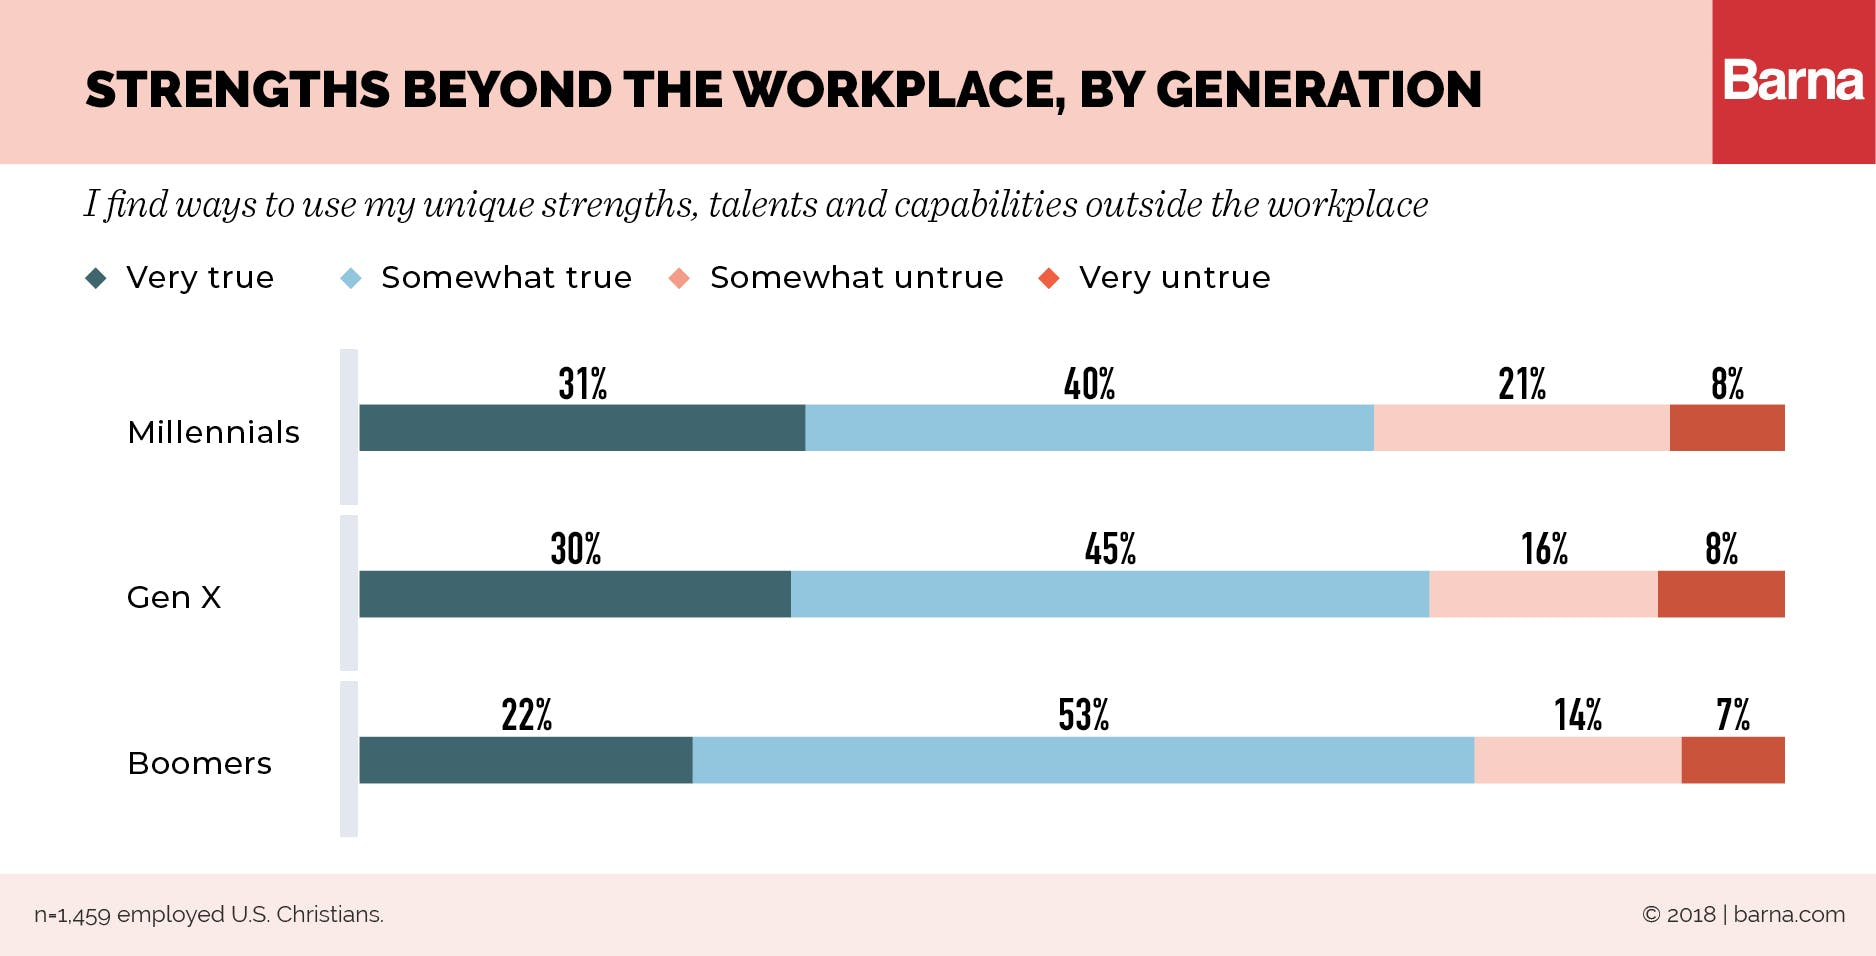 Millennials Bring Ambition and Optimism to Their Work